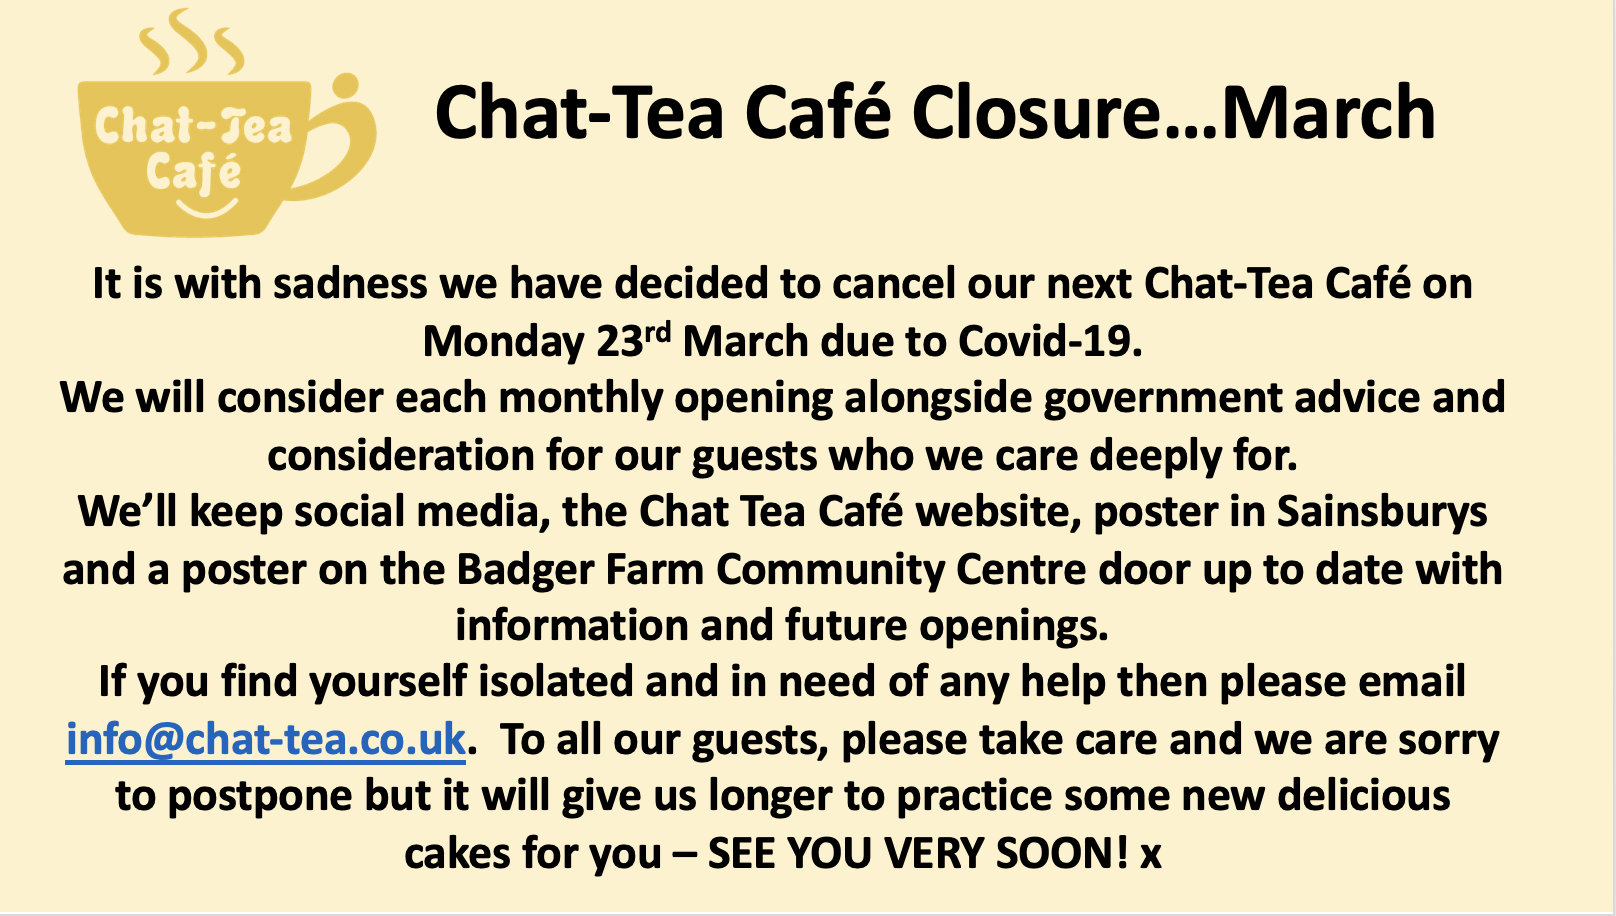 It is with sadness that we have decided to close our next Chat-Tea Café on Monday 23rd MArch due to Covid-19.